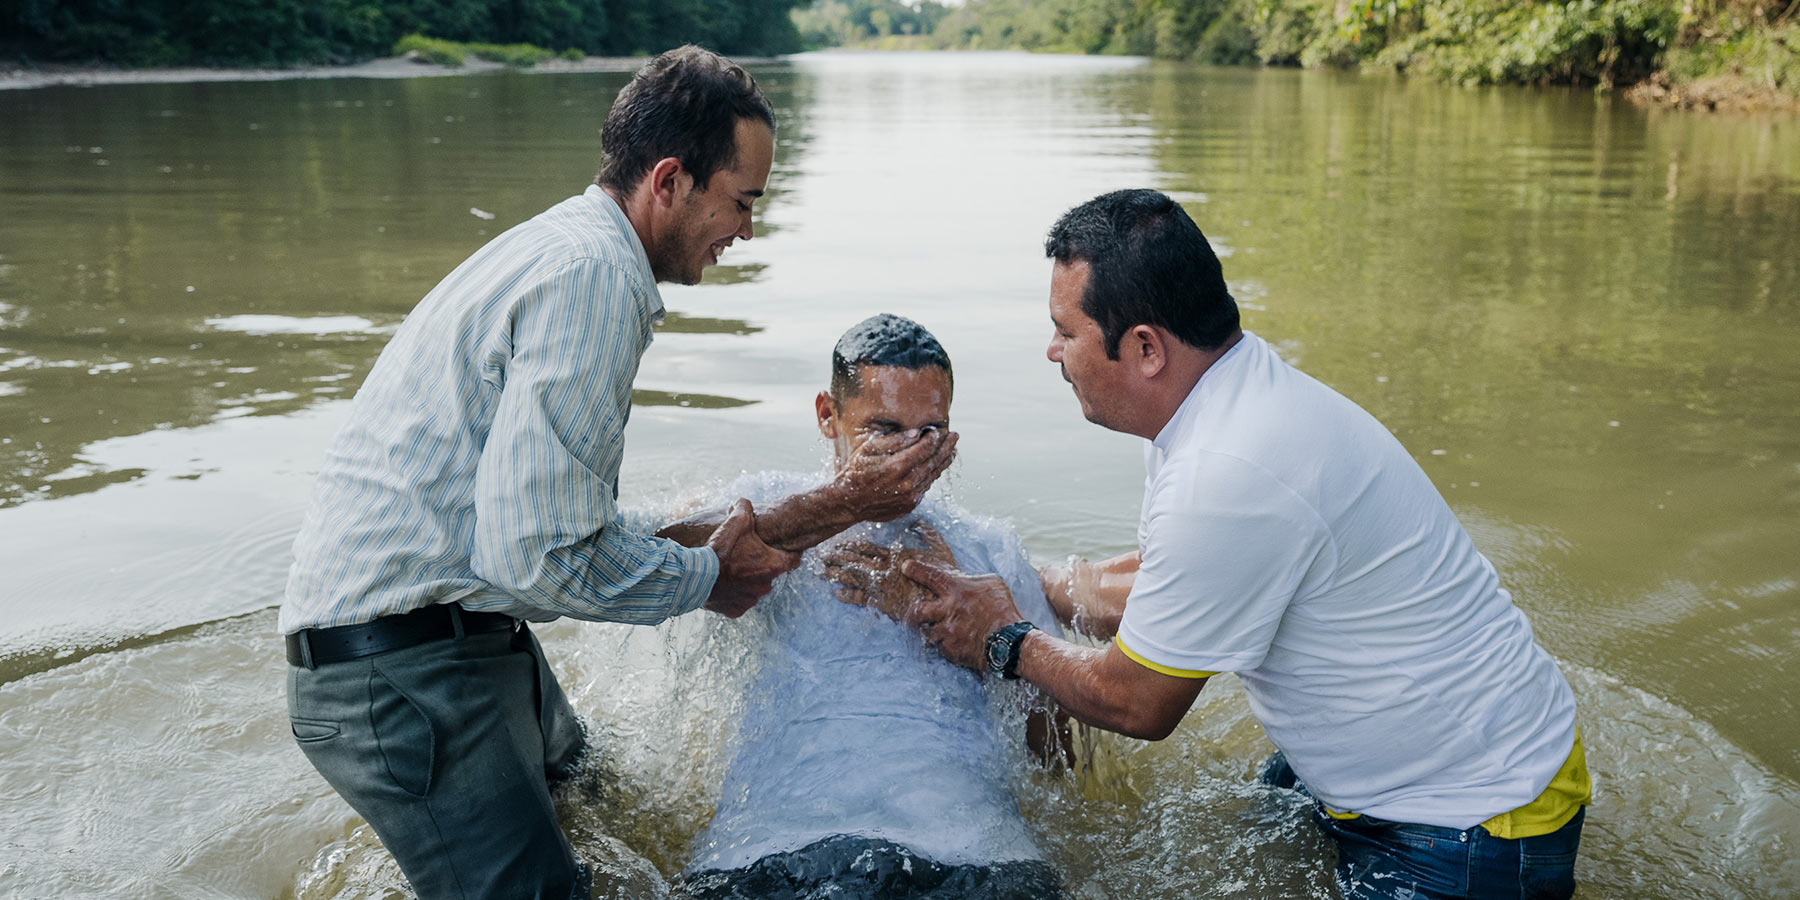 Person being baptized in a river.